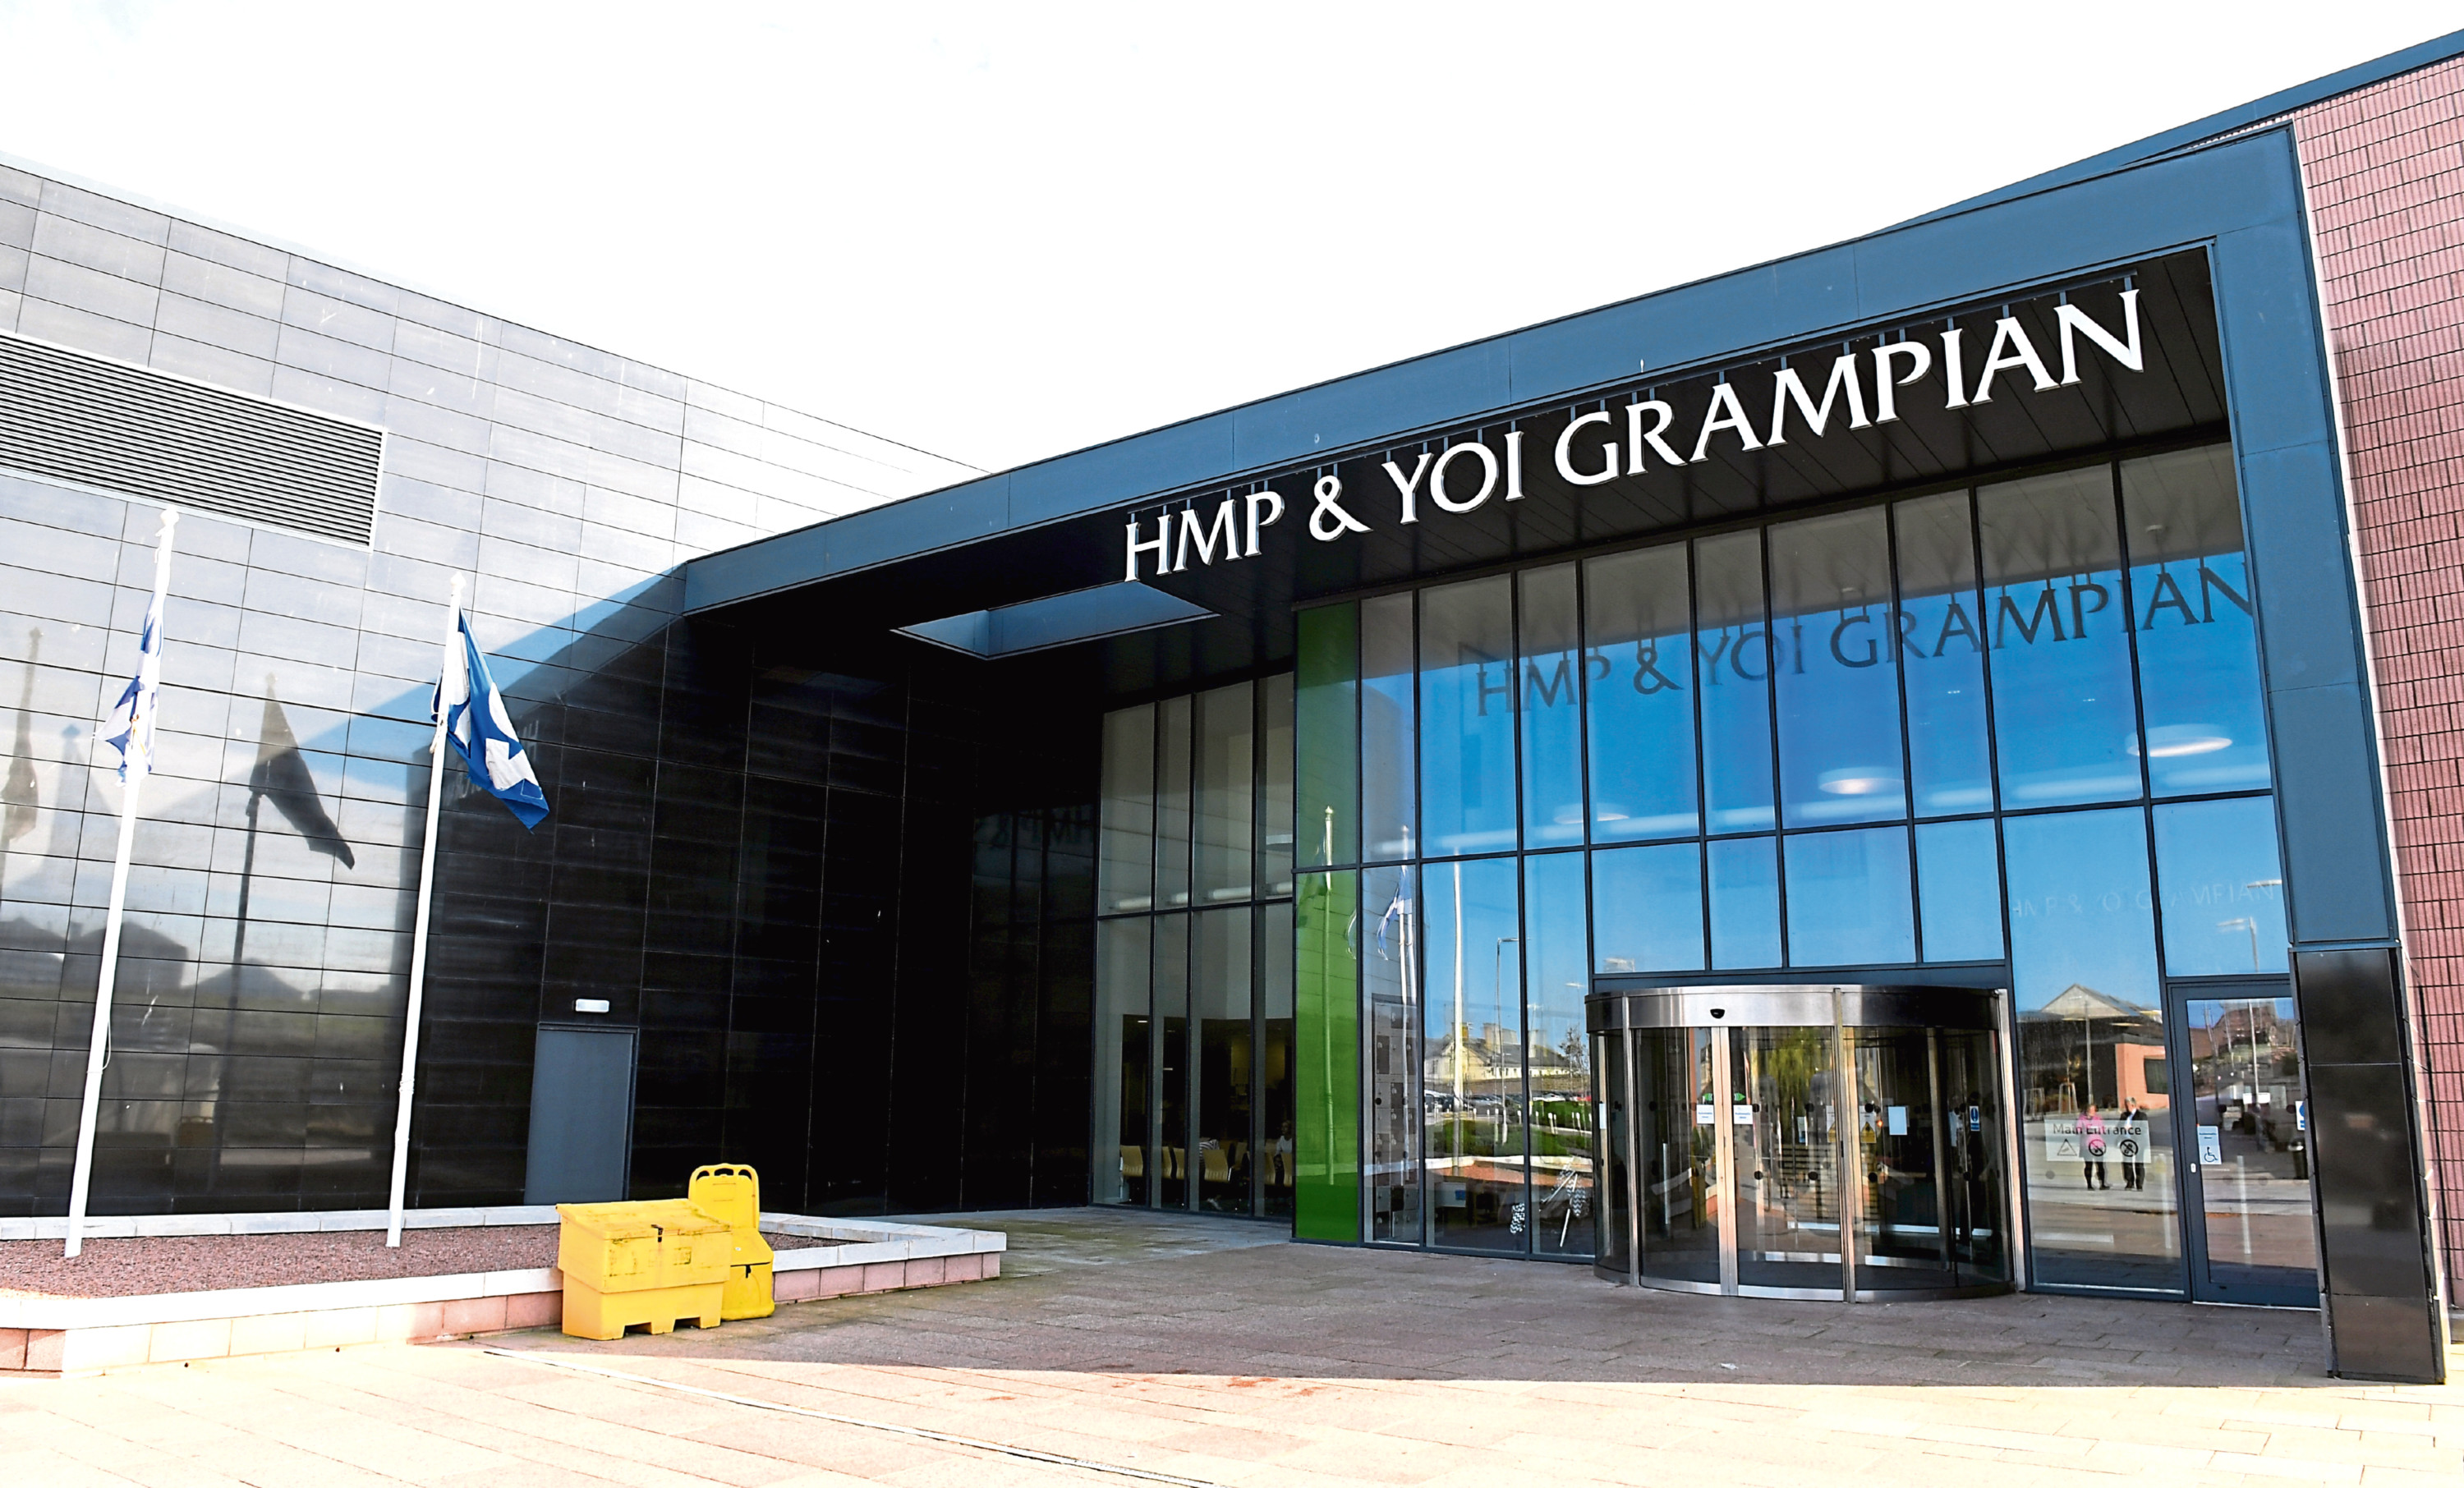 A report highlighted a serious shortage in healthcare staff at HMP and YOI Grampian as cause for concern